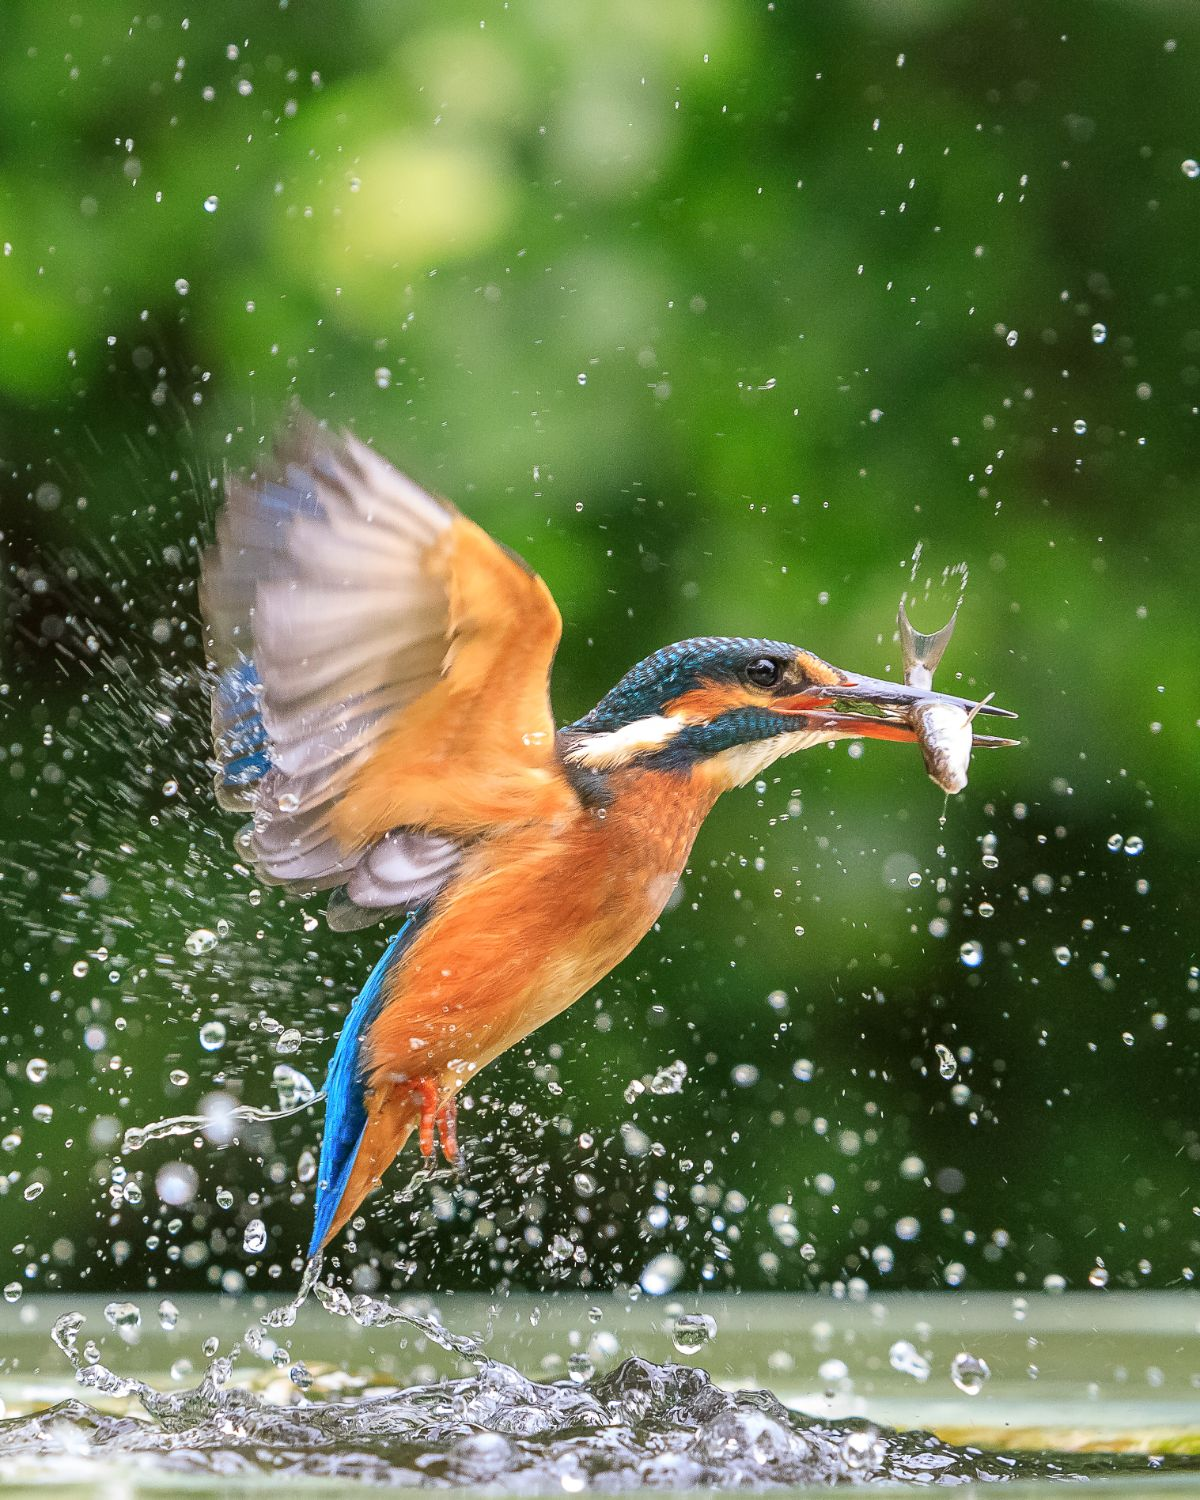 Beautiful Capture-of-Kingfisher jumping-a-Vis-janet-smith